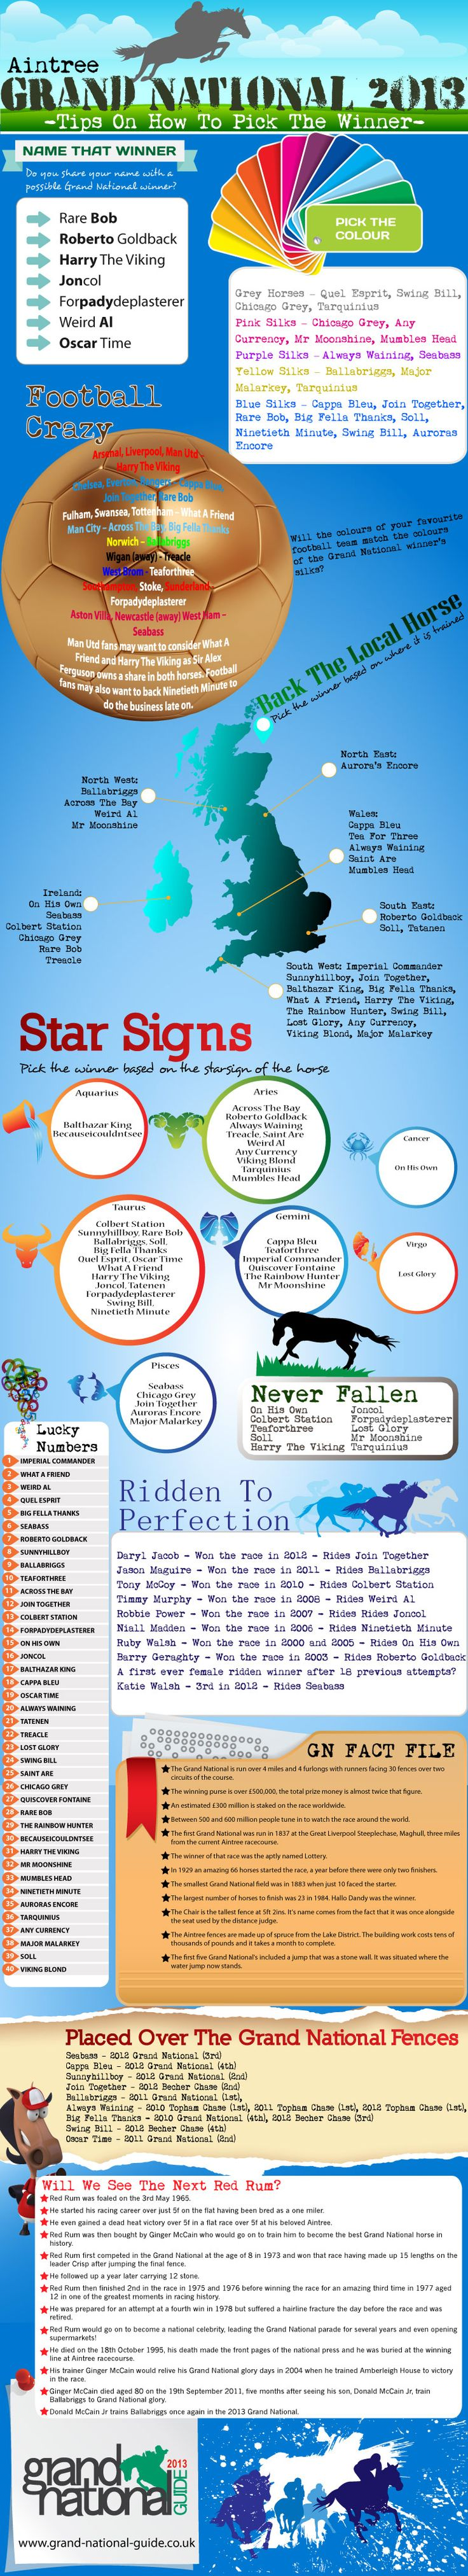 This infographic helps punters pick their Grand National 2013 Tips. You can pick a Grand National runner based on the names, the colours of the silks,